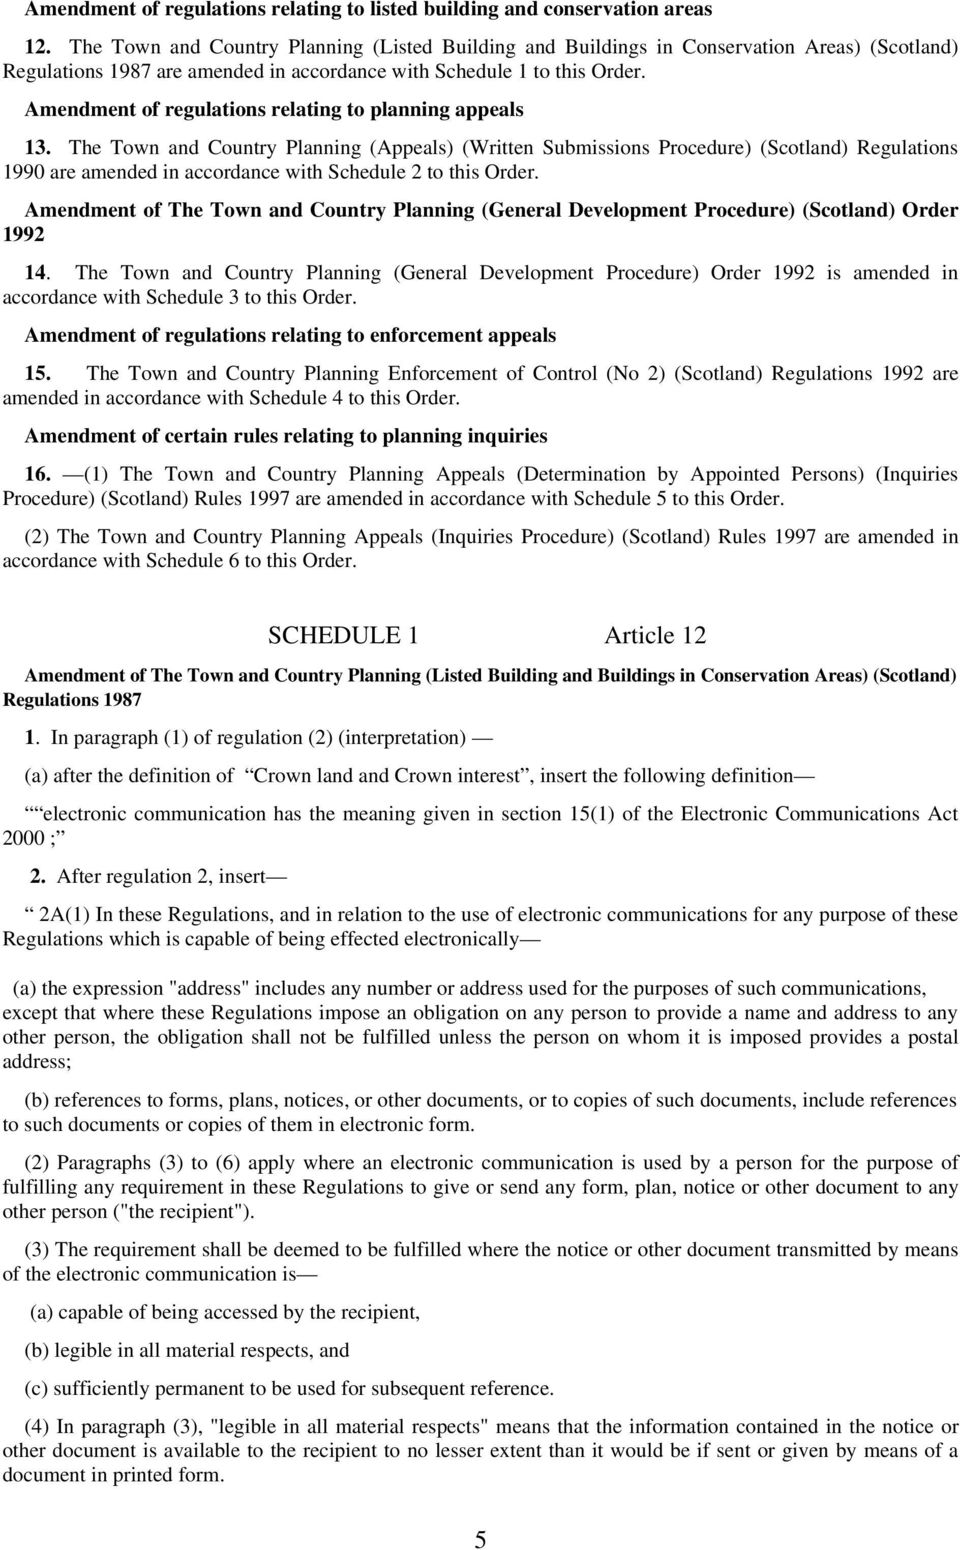 Amendment of regulations relating to planning appeals 13.